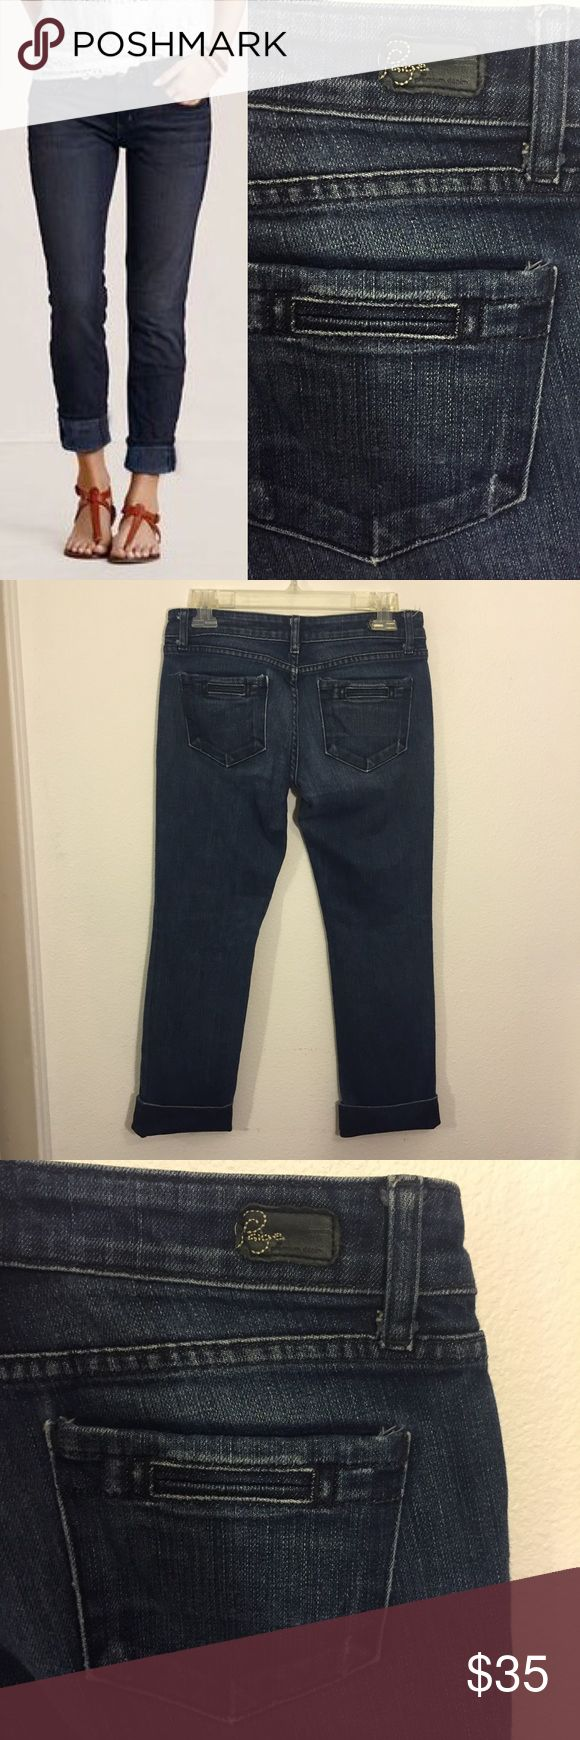 PAIGE Premium Denim Ankle Pant Beautiful Paige Premium Denim Capri Ankle length. Size 28! Lightly worn and ready for the next owner!!! Beautiful quality denim, I love this brand. Straight leg. Photos display the pants cuffed and not cuffed for your preference. Adorable look. Paige Jeans Jeans Ankle & Cropped